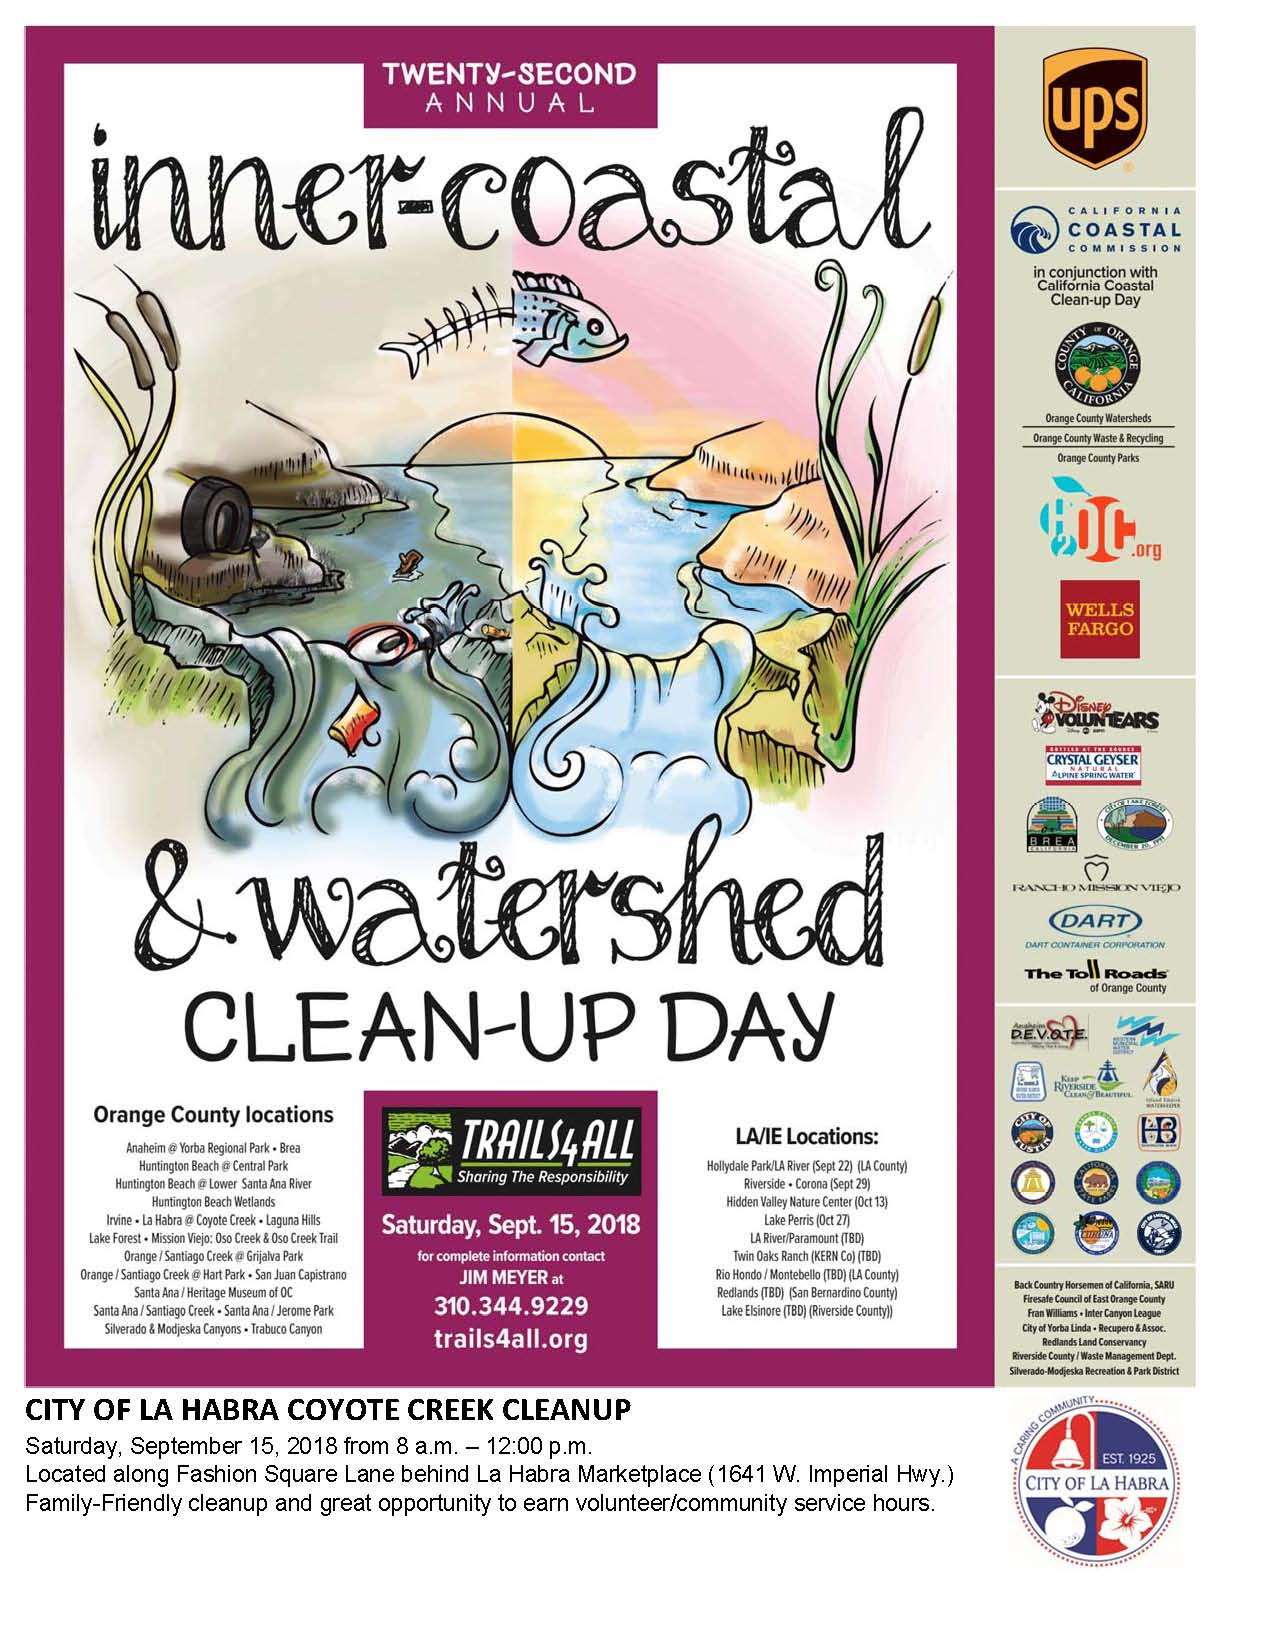 InnerCoastalCleanup2018 Flyer